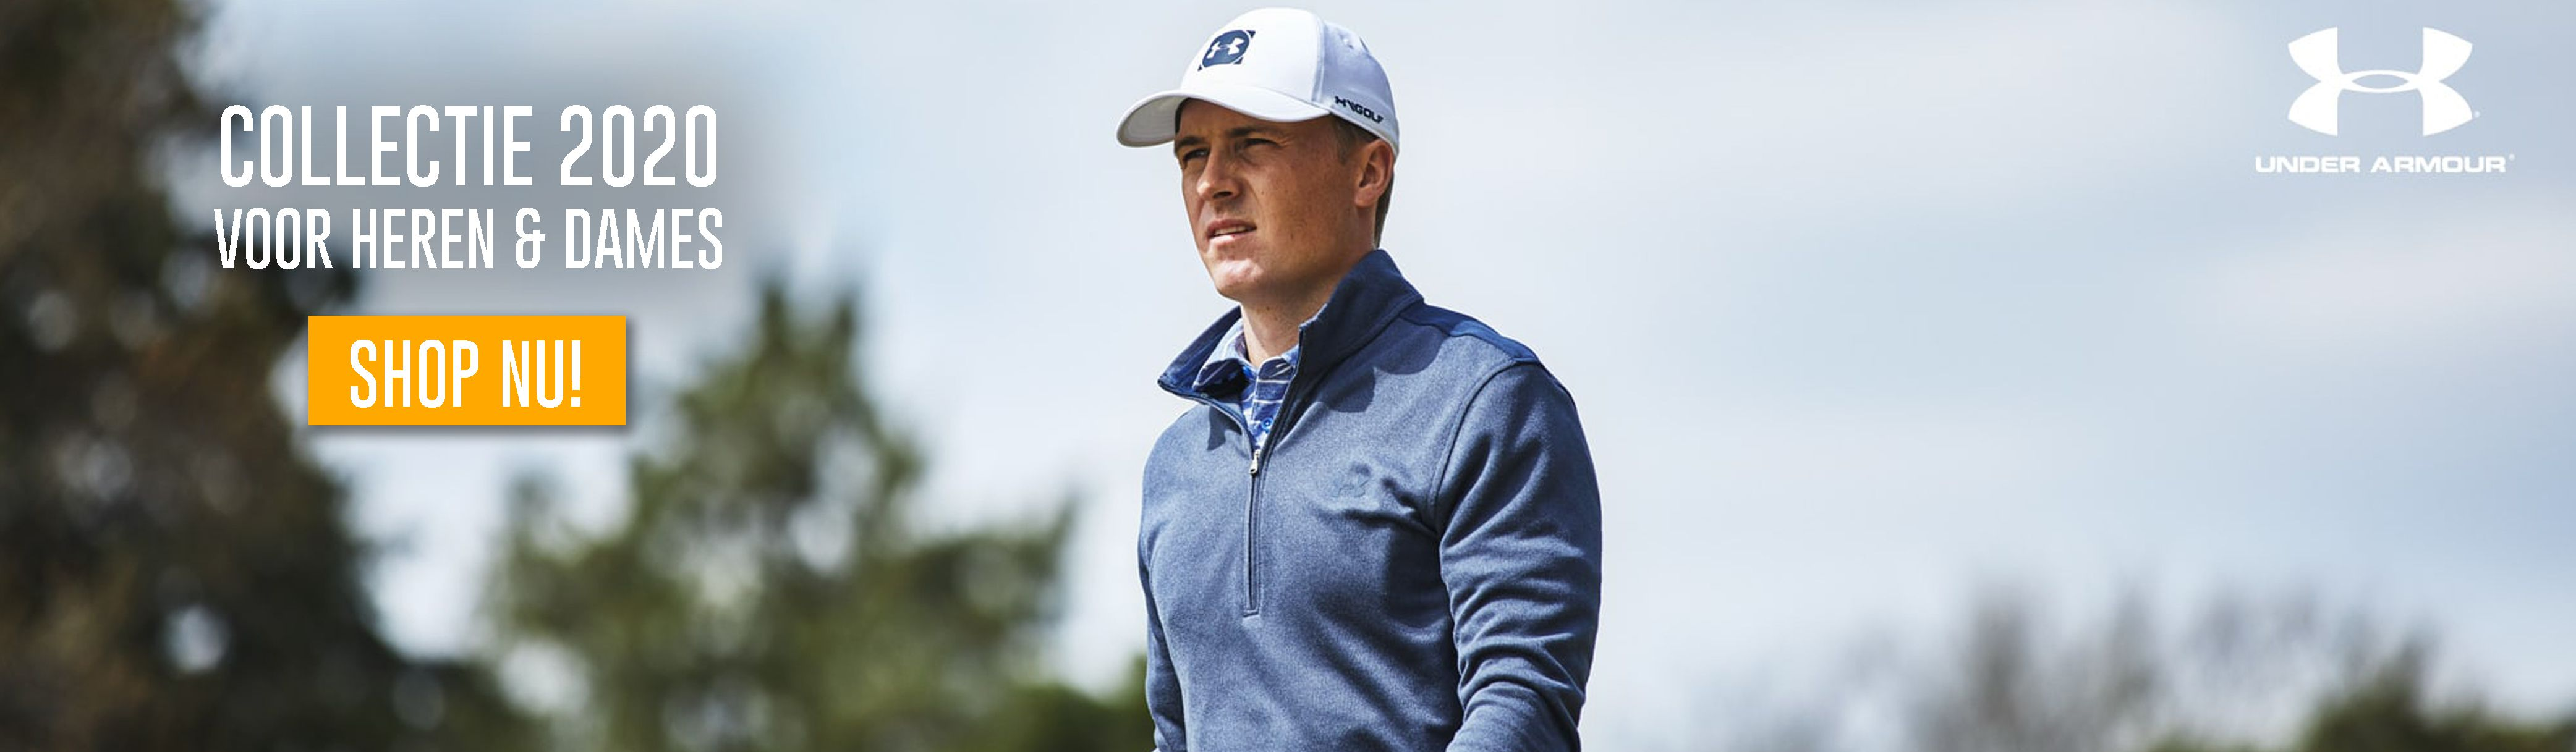 Under Armour Golf Collectie 2020